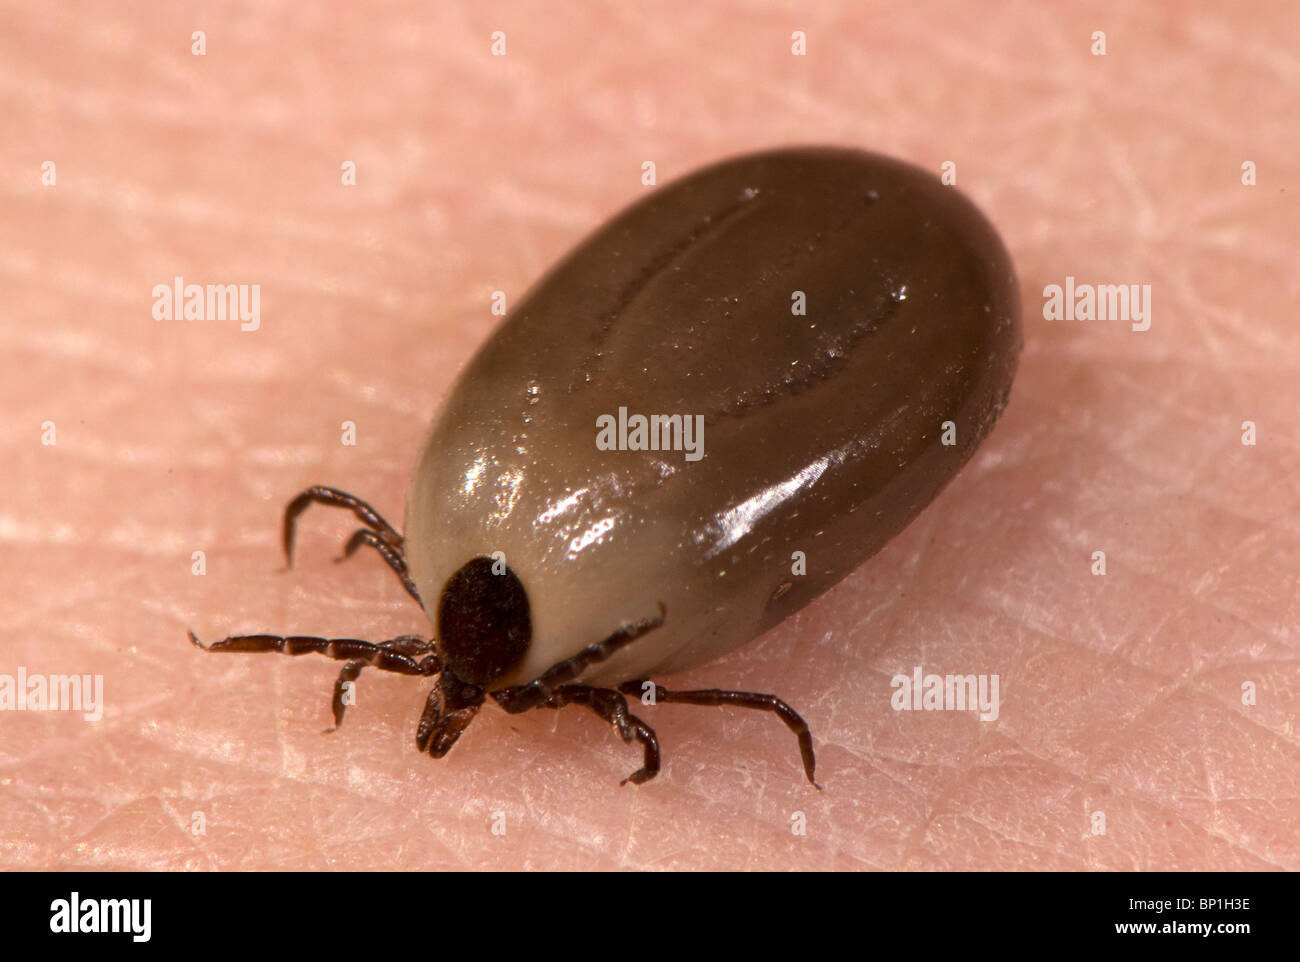 engorged Ixodes tick, a vector of Lyme disease - Stock Image